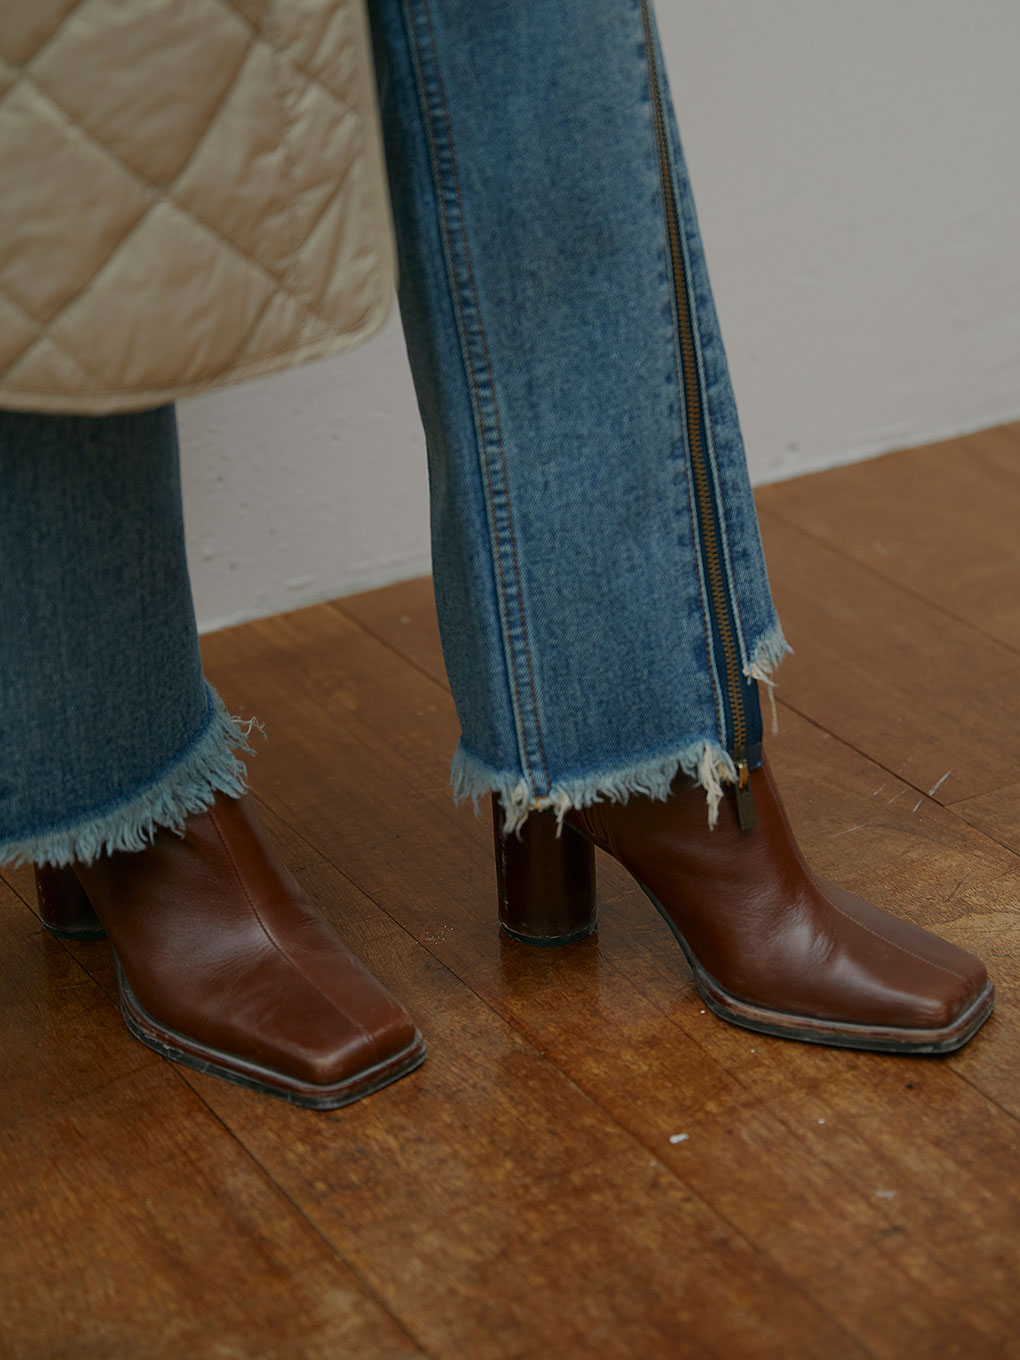 UNDRESSED DIMENSIONAL SQUARE BOOTS